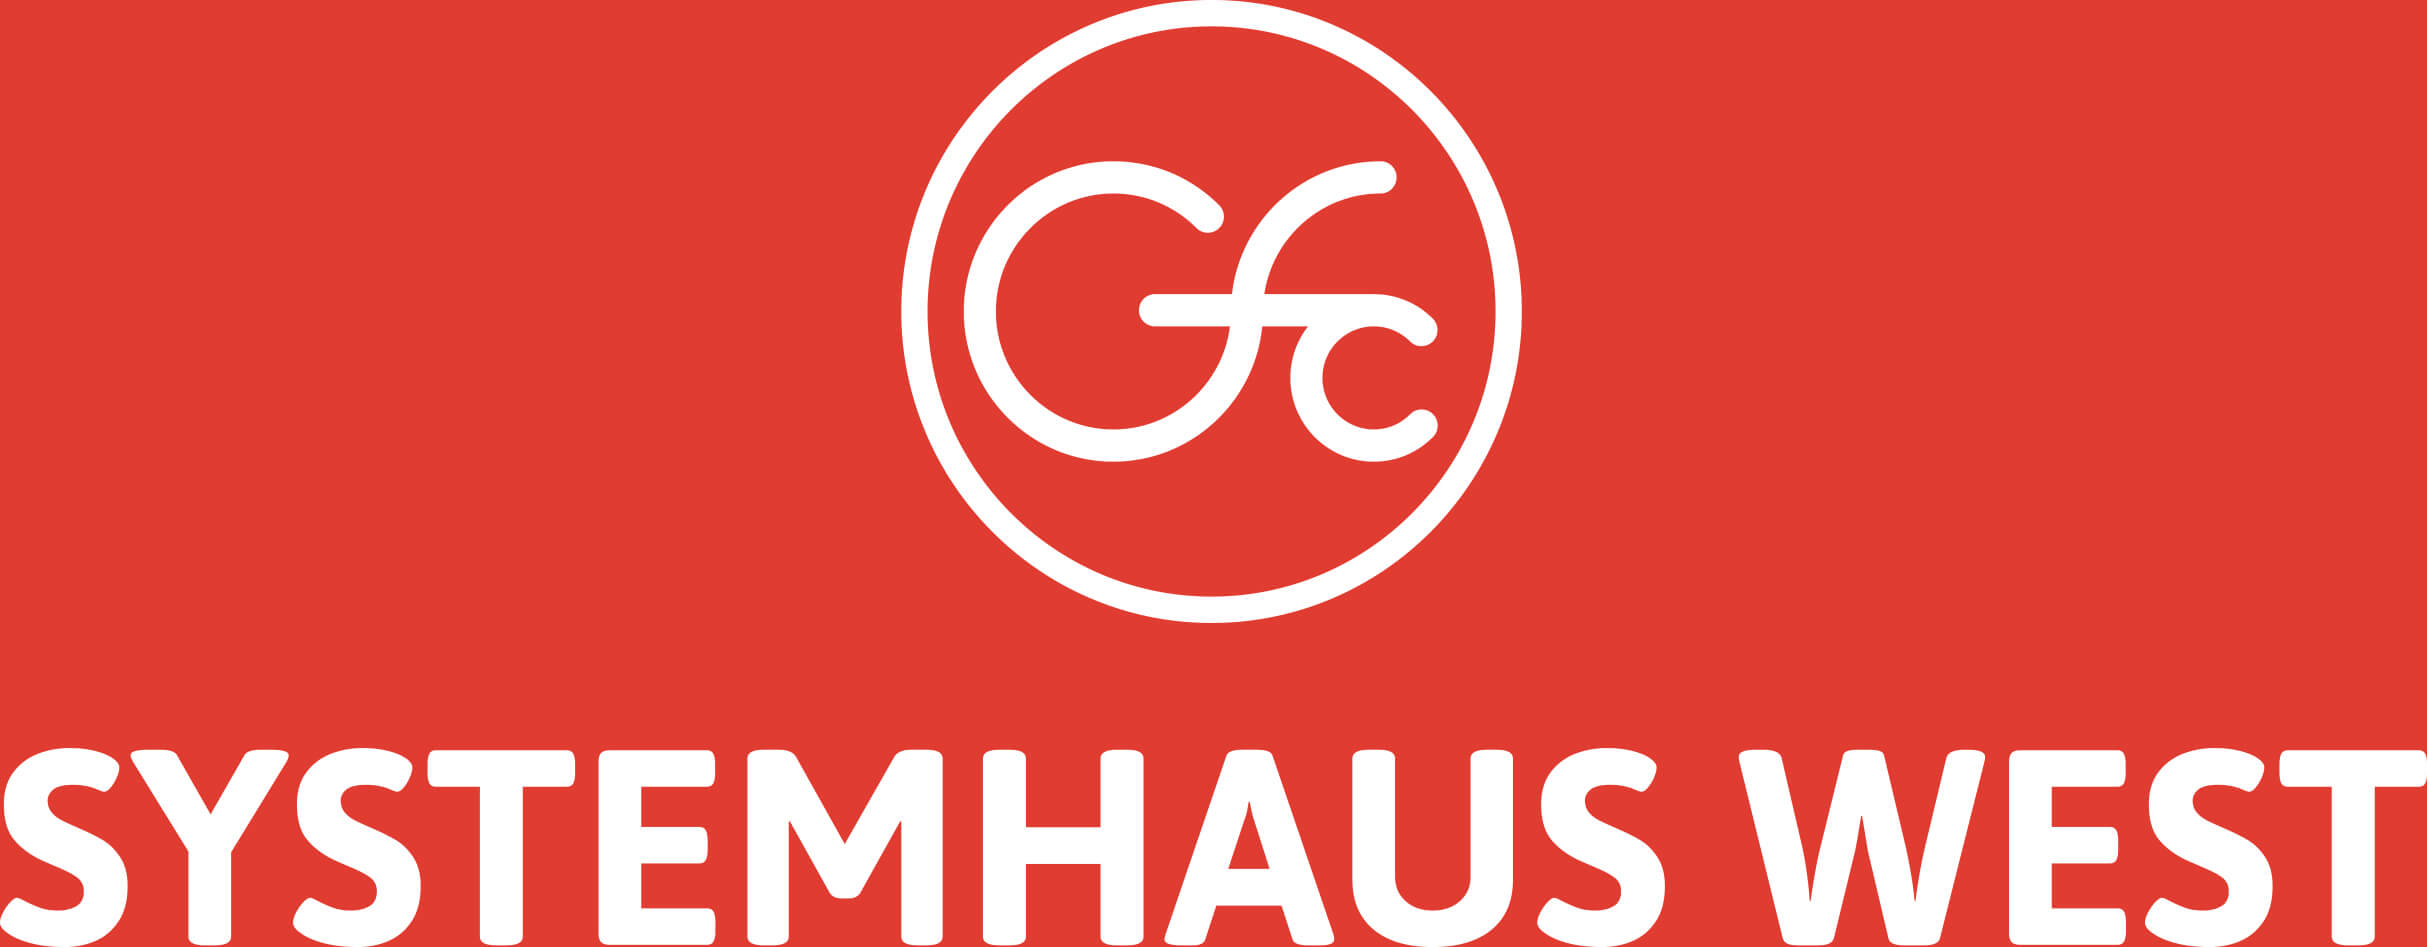 Systemhaus West GmbH